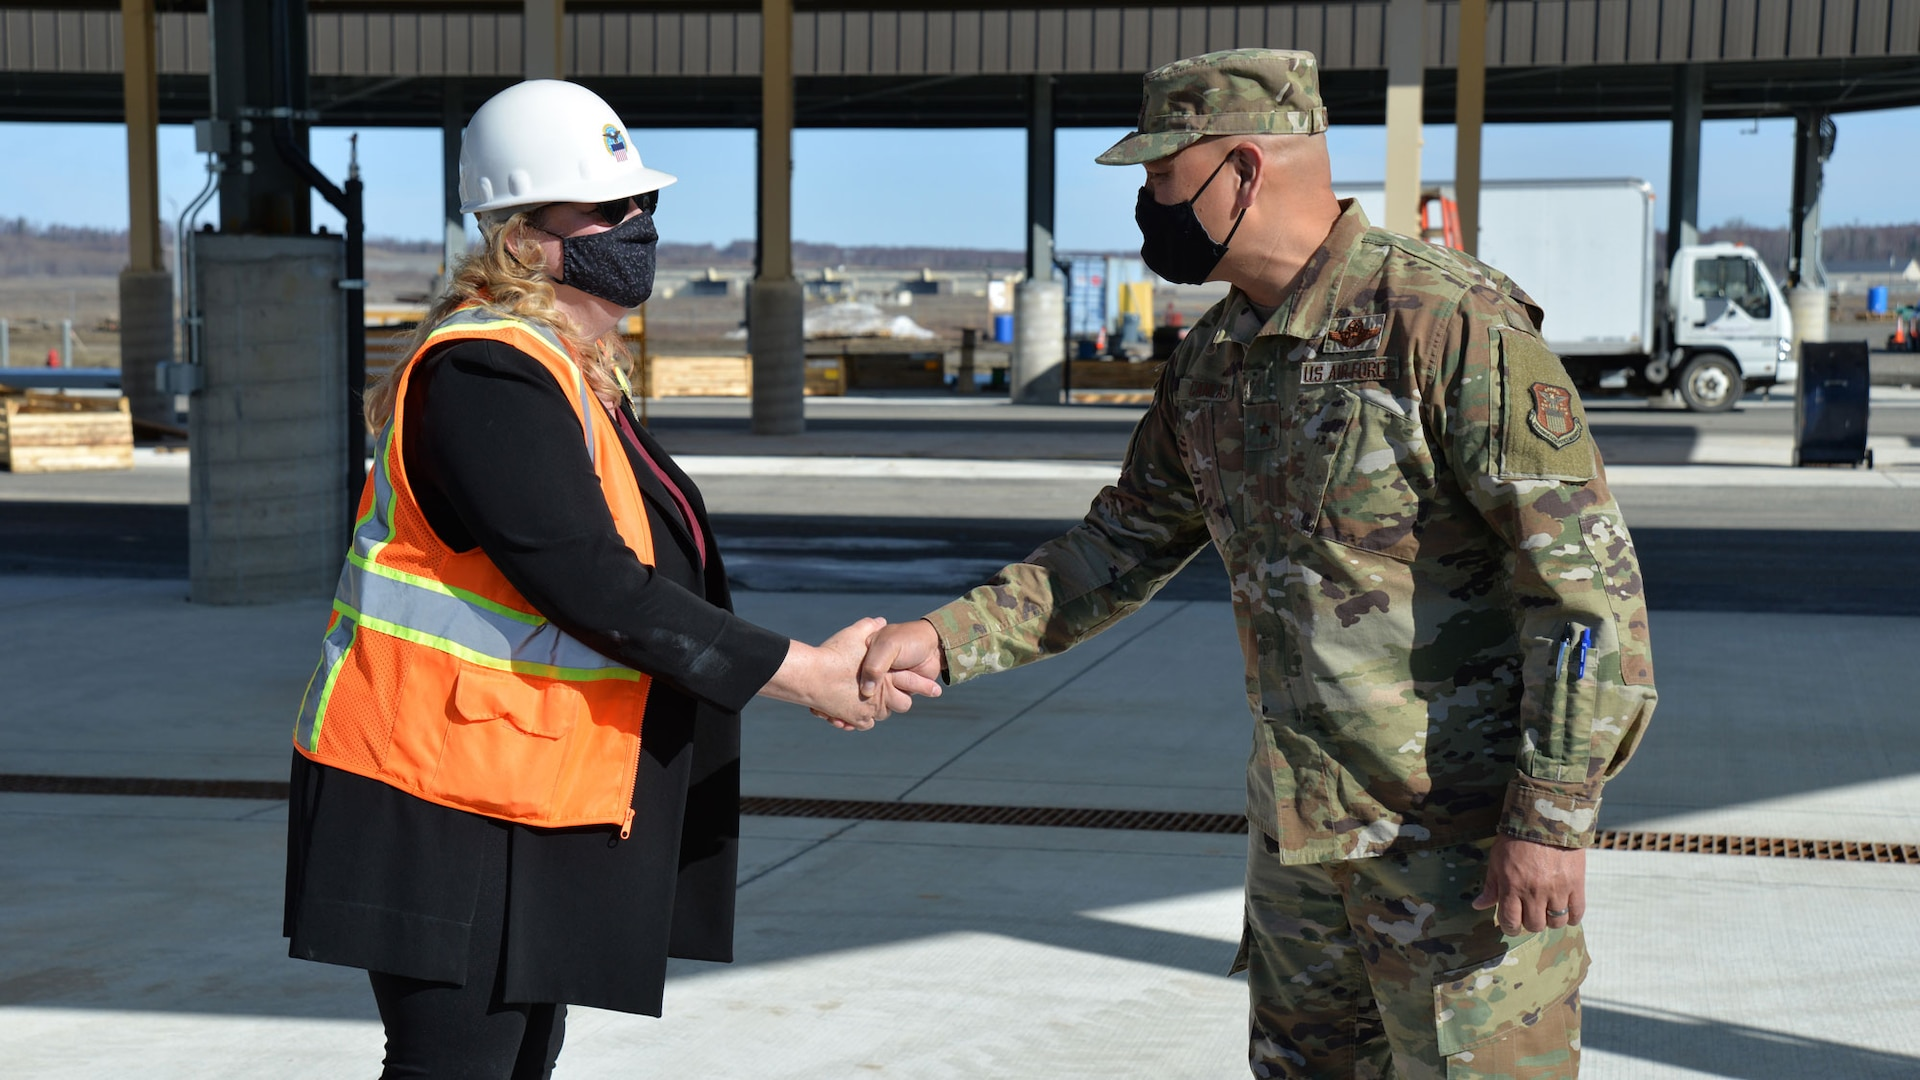 a military general officer shakes a woman's hand